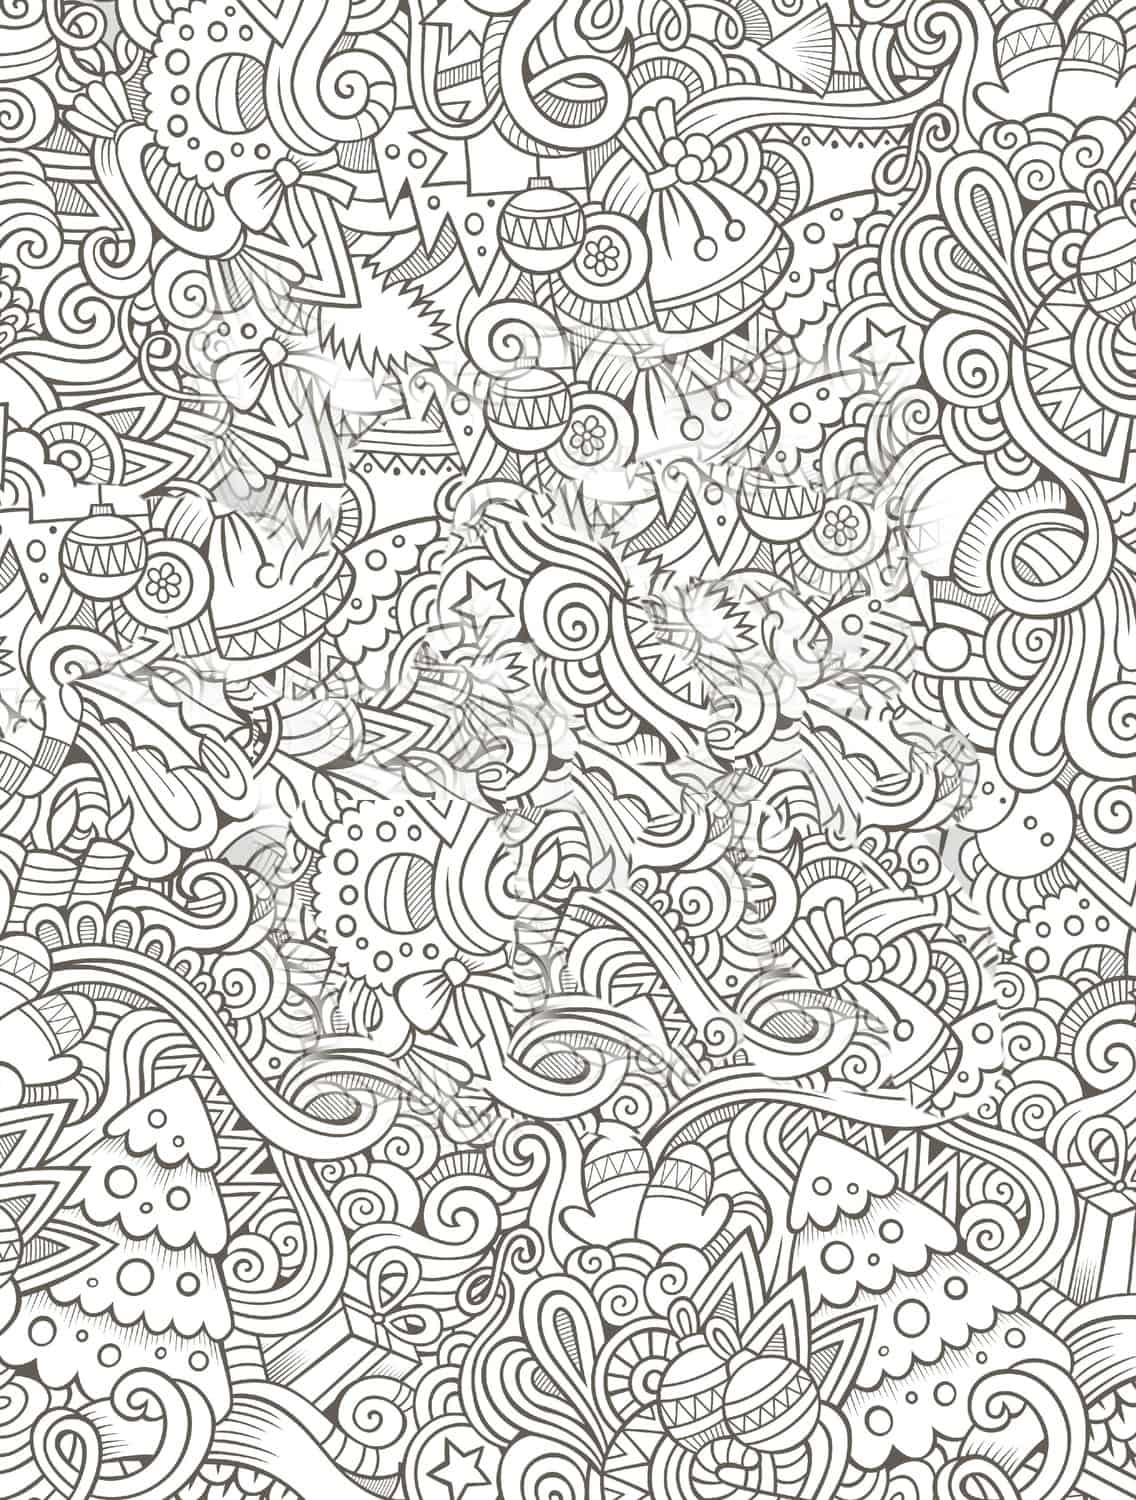 Colouring in for adults why - Busy Coloring Page For Free Christmas Gift Small